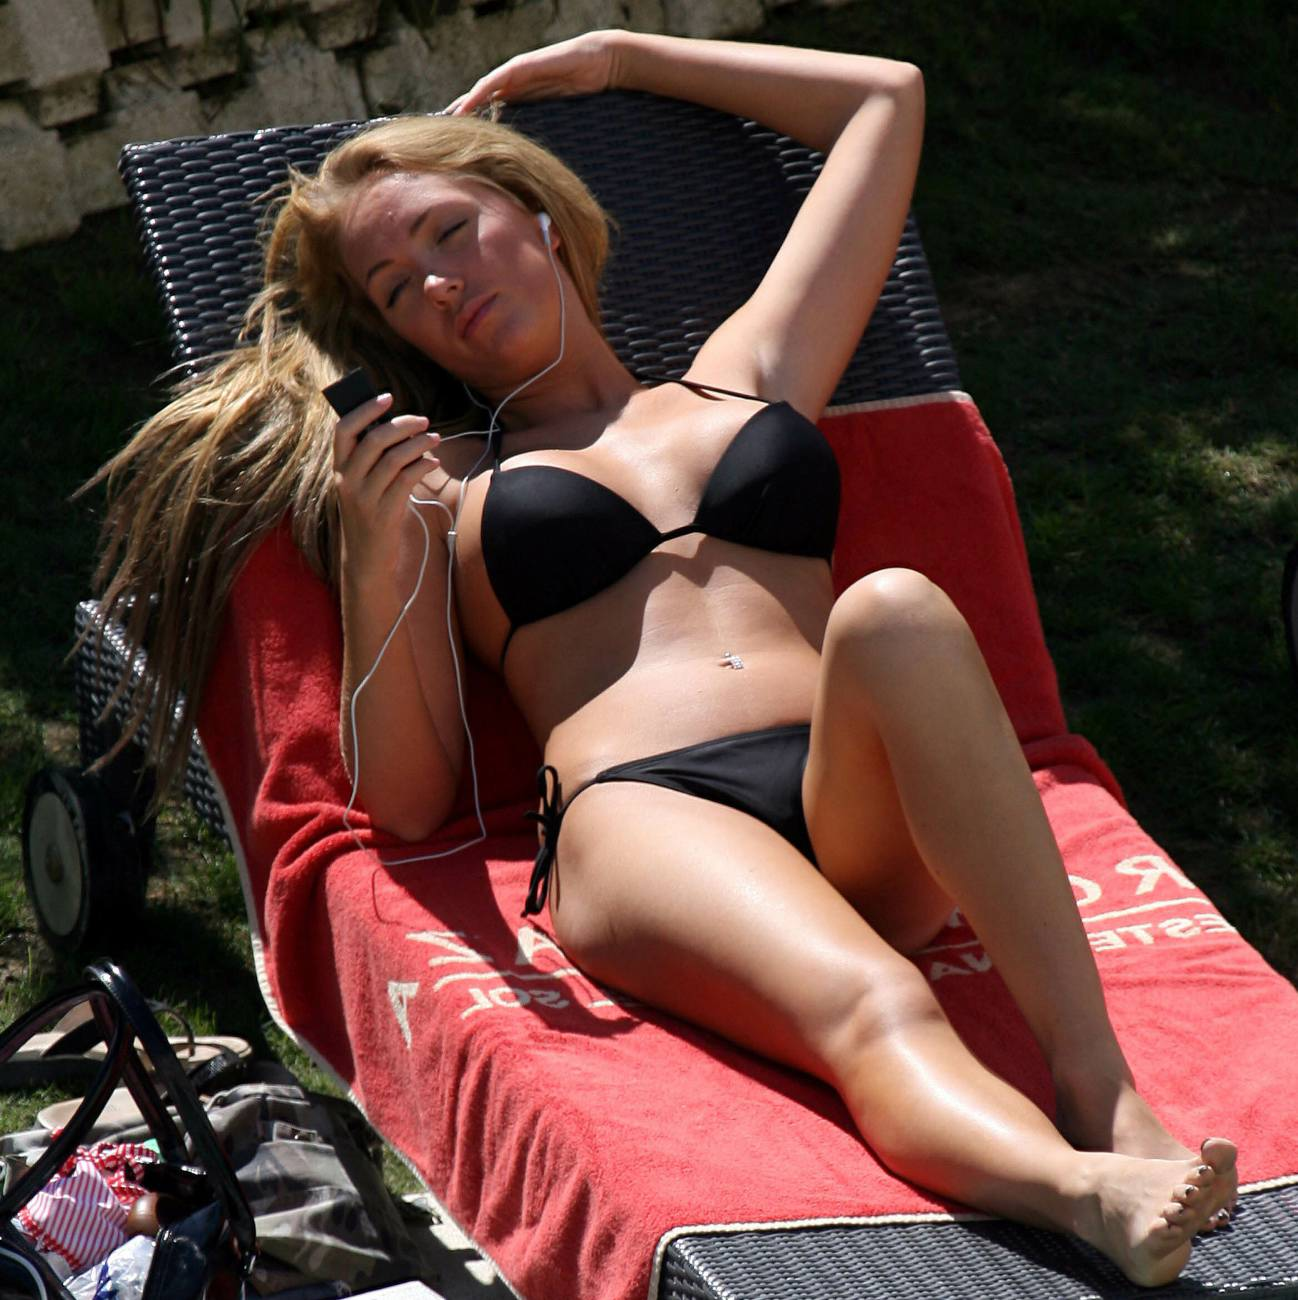 Aisleyne Horgan Wallaces bikini pictures